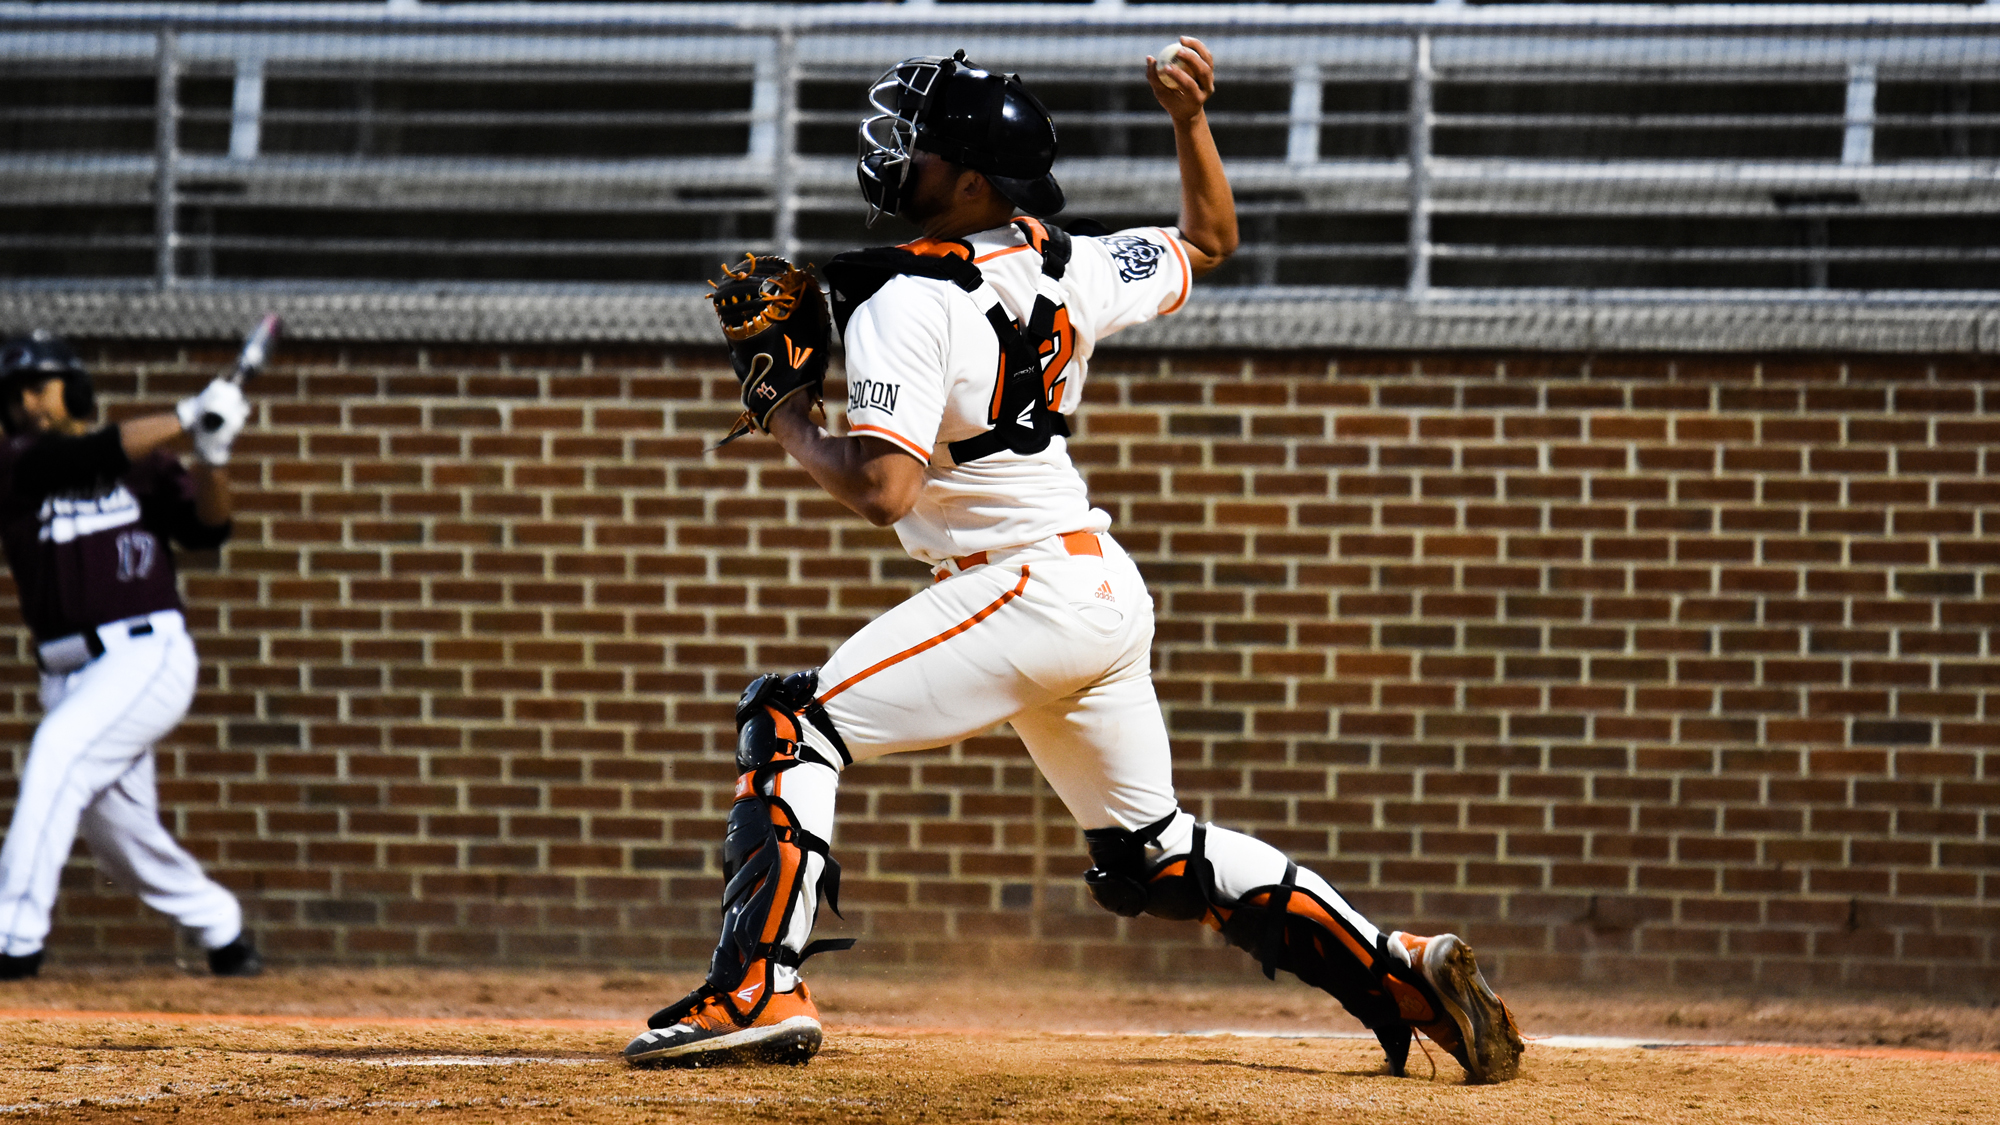 Cj Keckler Baseball Mercer University Athletics